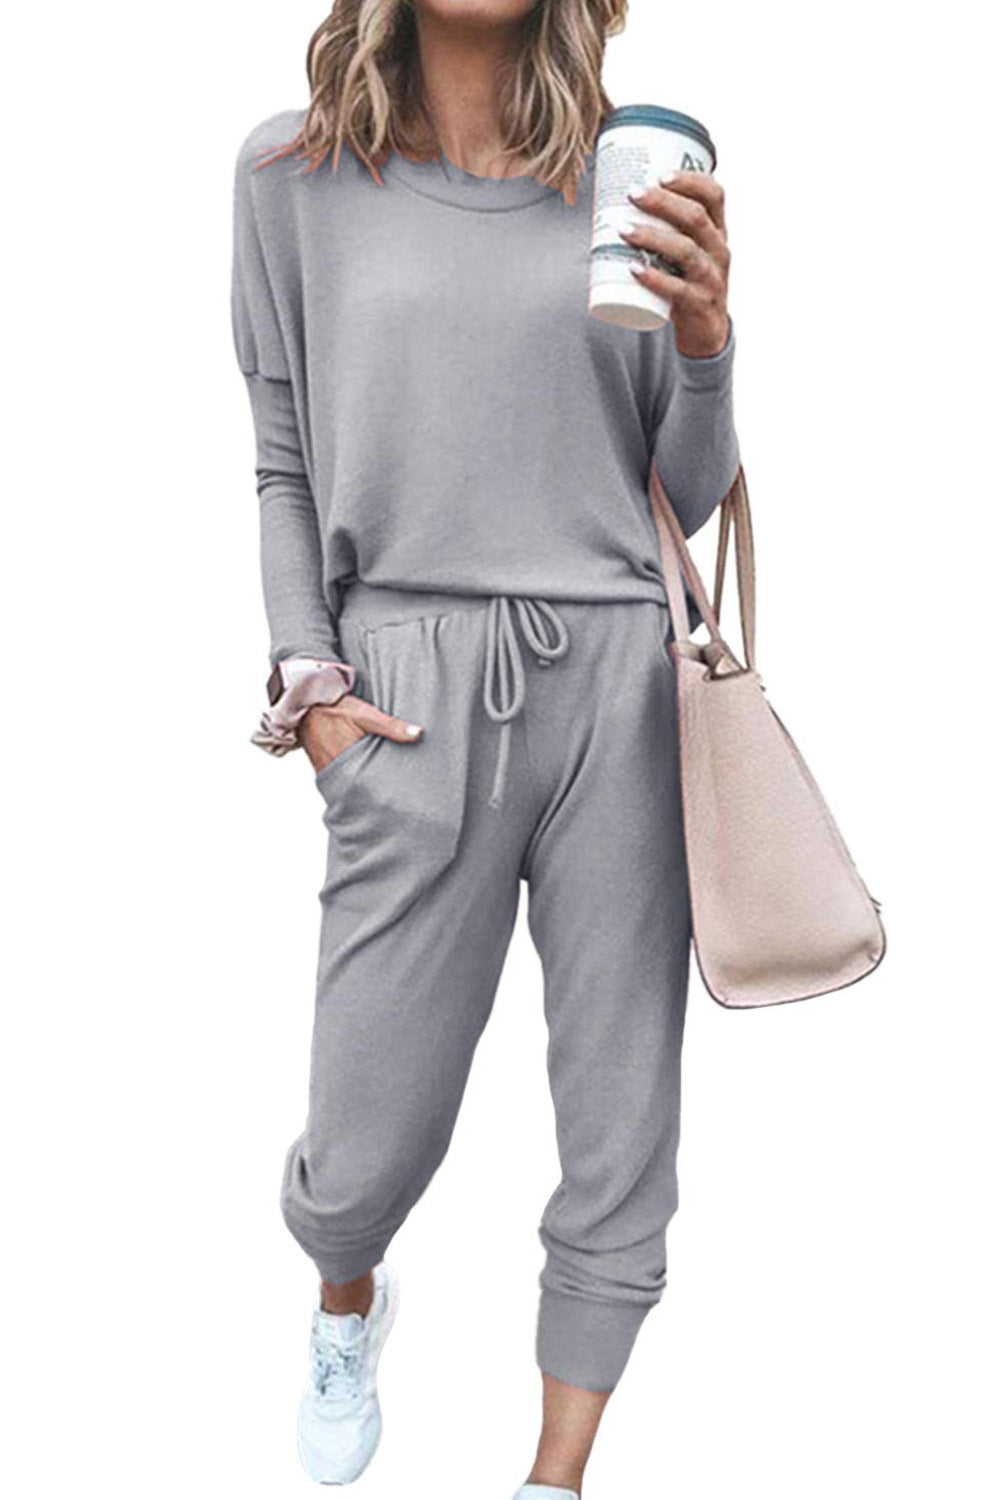 Gray Star Print Two-Piece Set Sports Wear Lounge Sets Discount Designer Fashion Clothes Shoes Bags Women Men Kids Children Black Owned Business